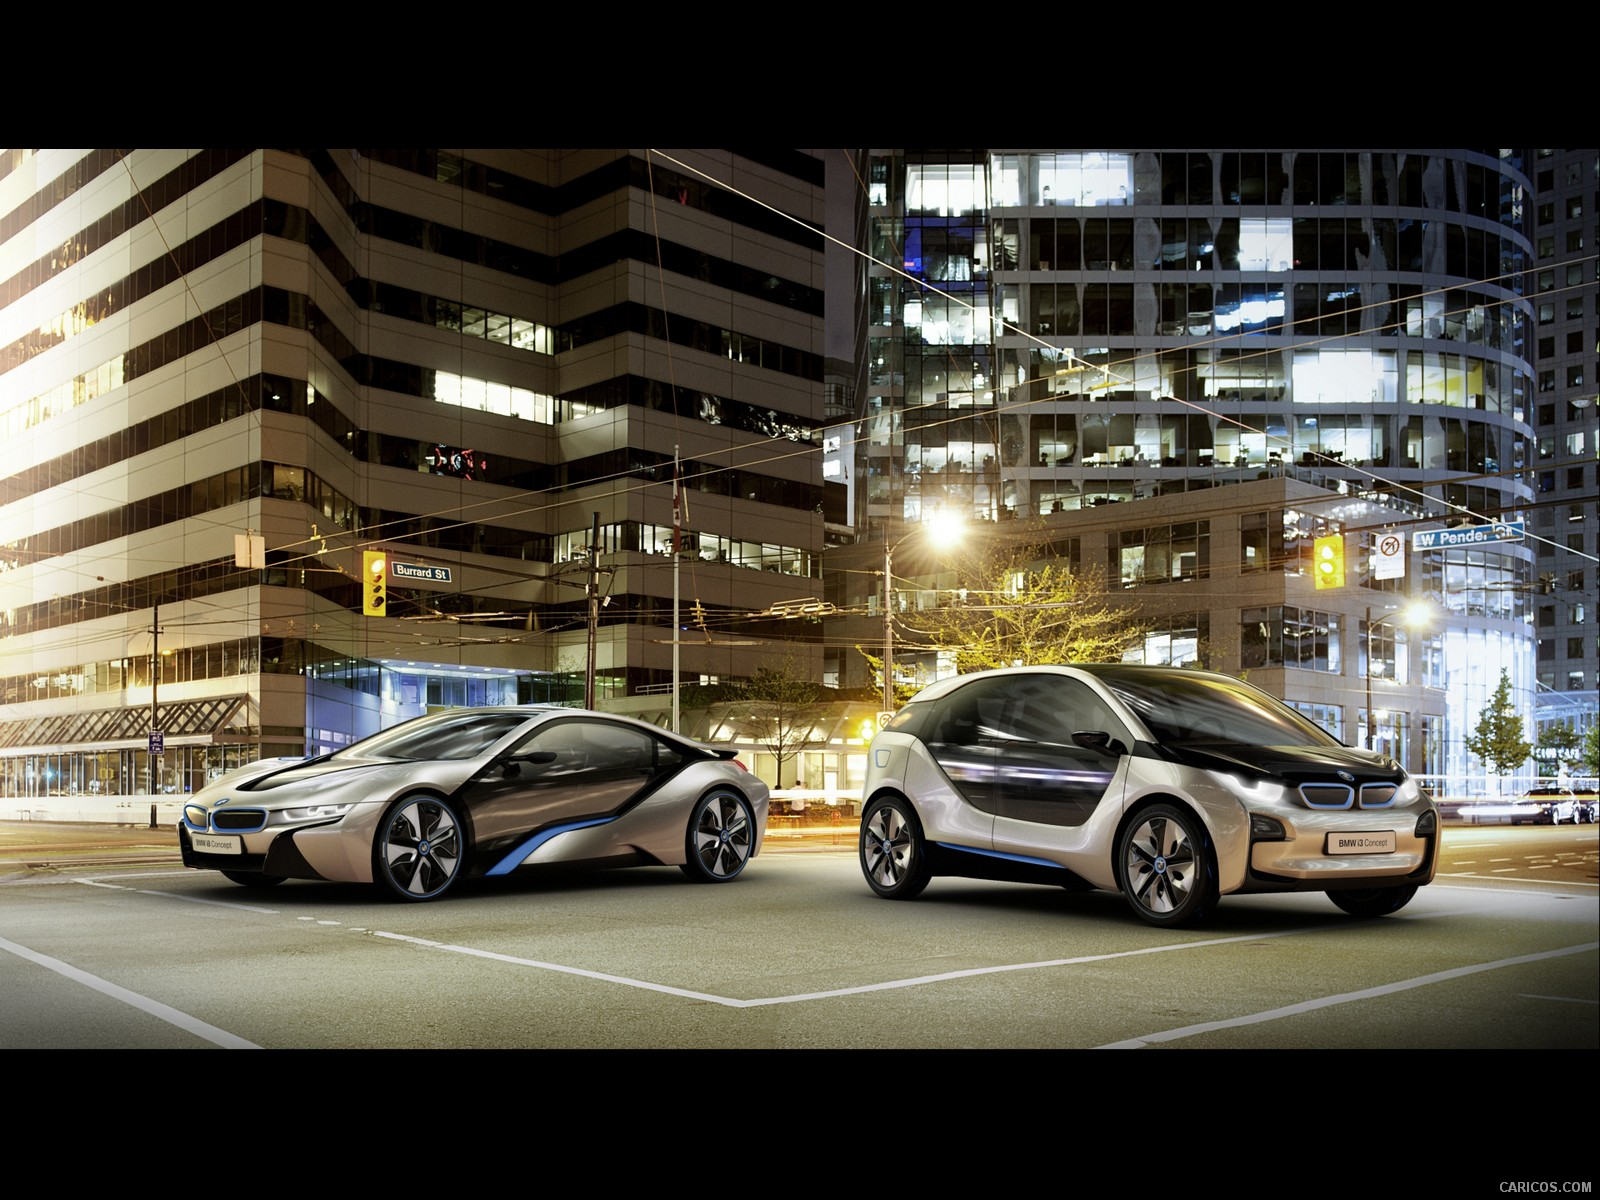 1600x1200 - BMW i3 Concept Wallpapers 16